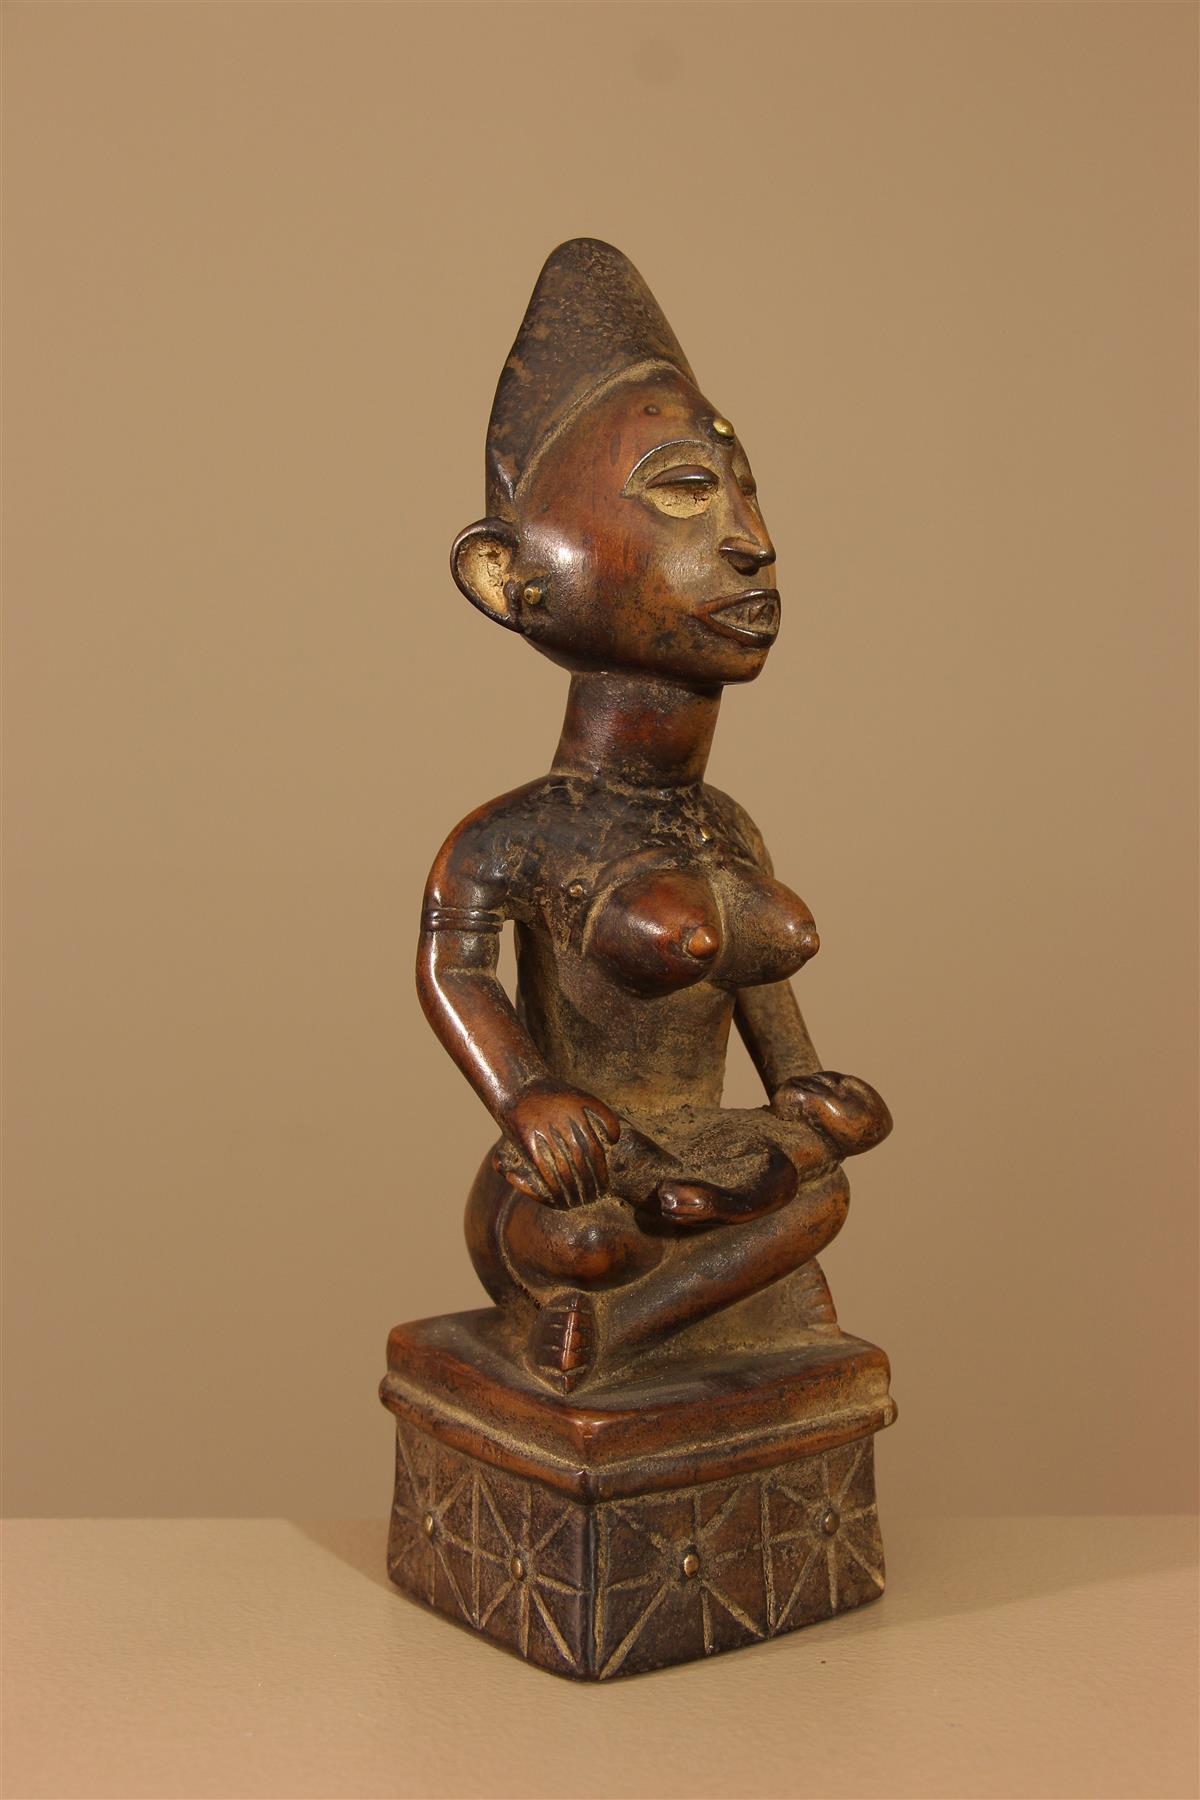 Statuette Kongo - Déco africaine - Art africain traditionnel